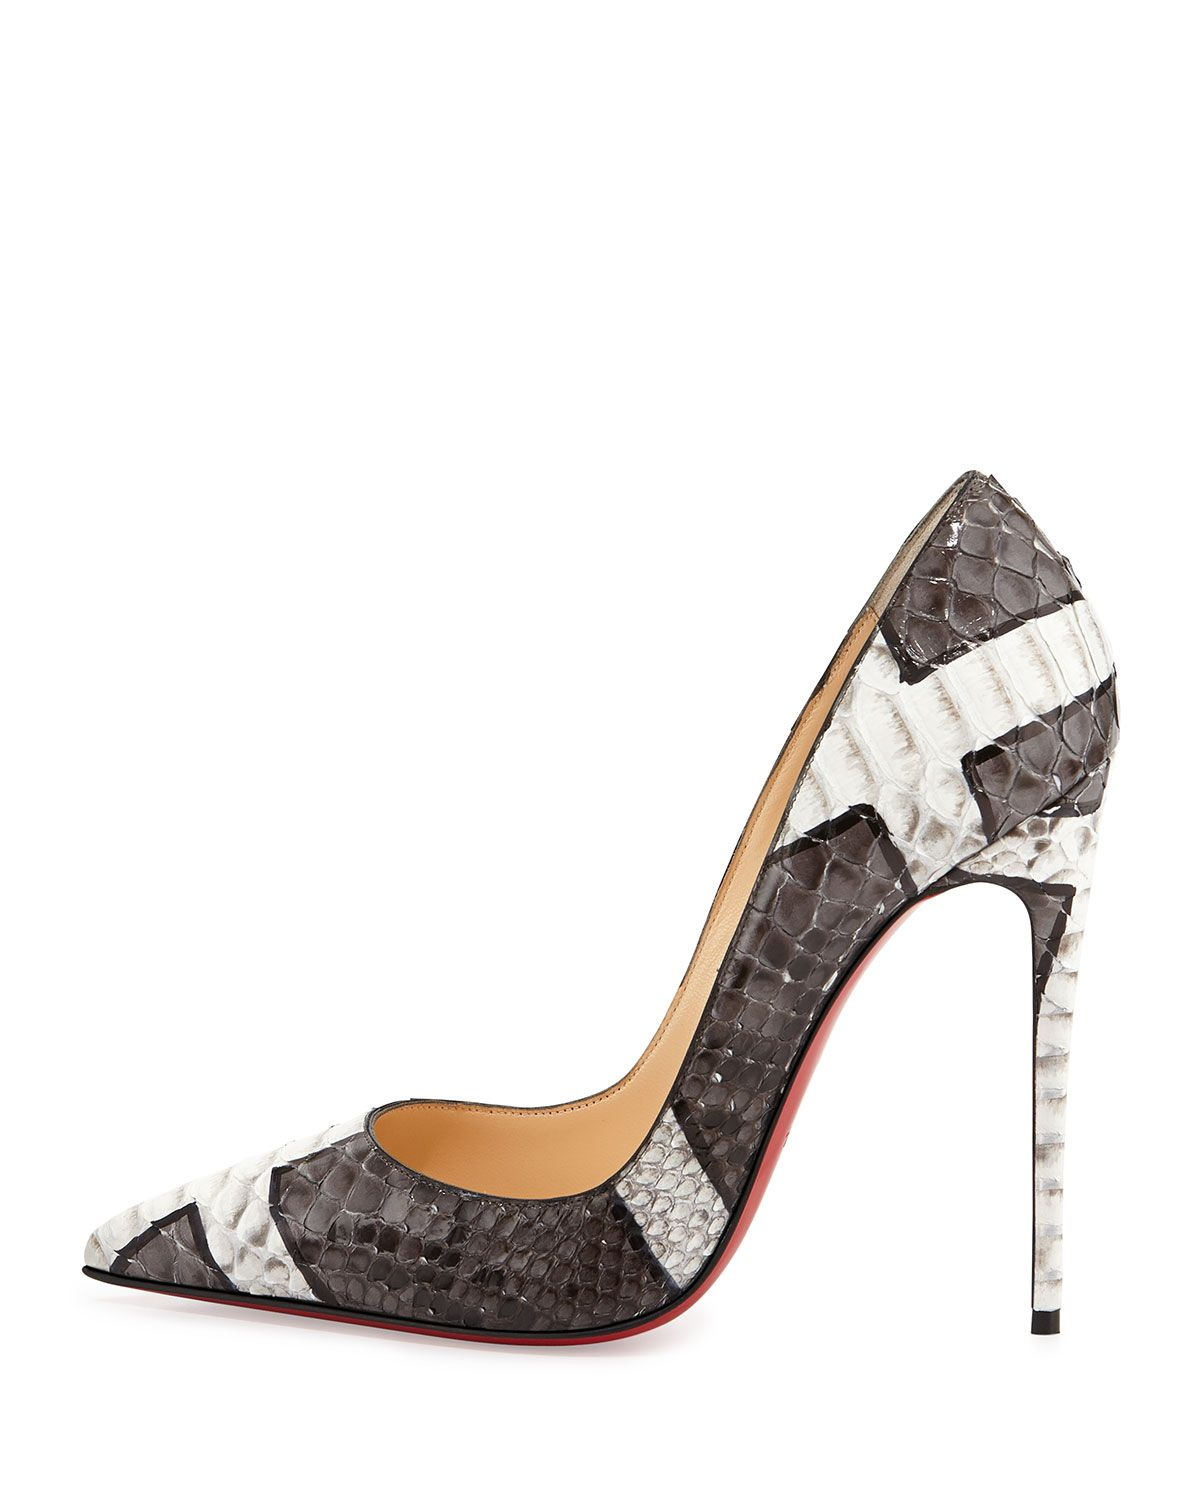 3b99786ff9f So Kate Python Red Sole Pump Gray/White | Shoes | Shoes, Louboutin ...